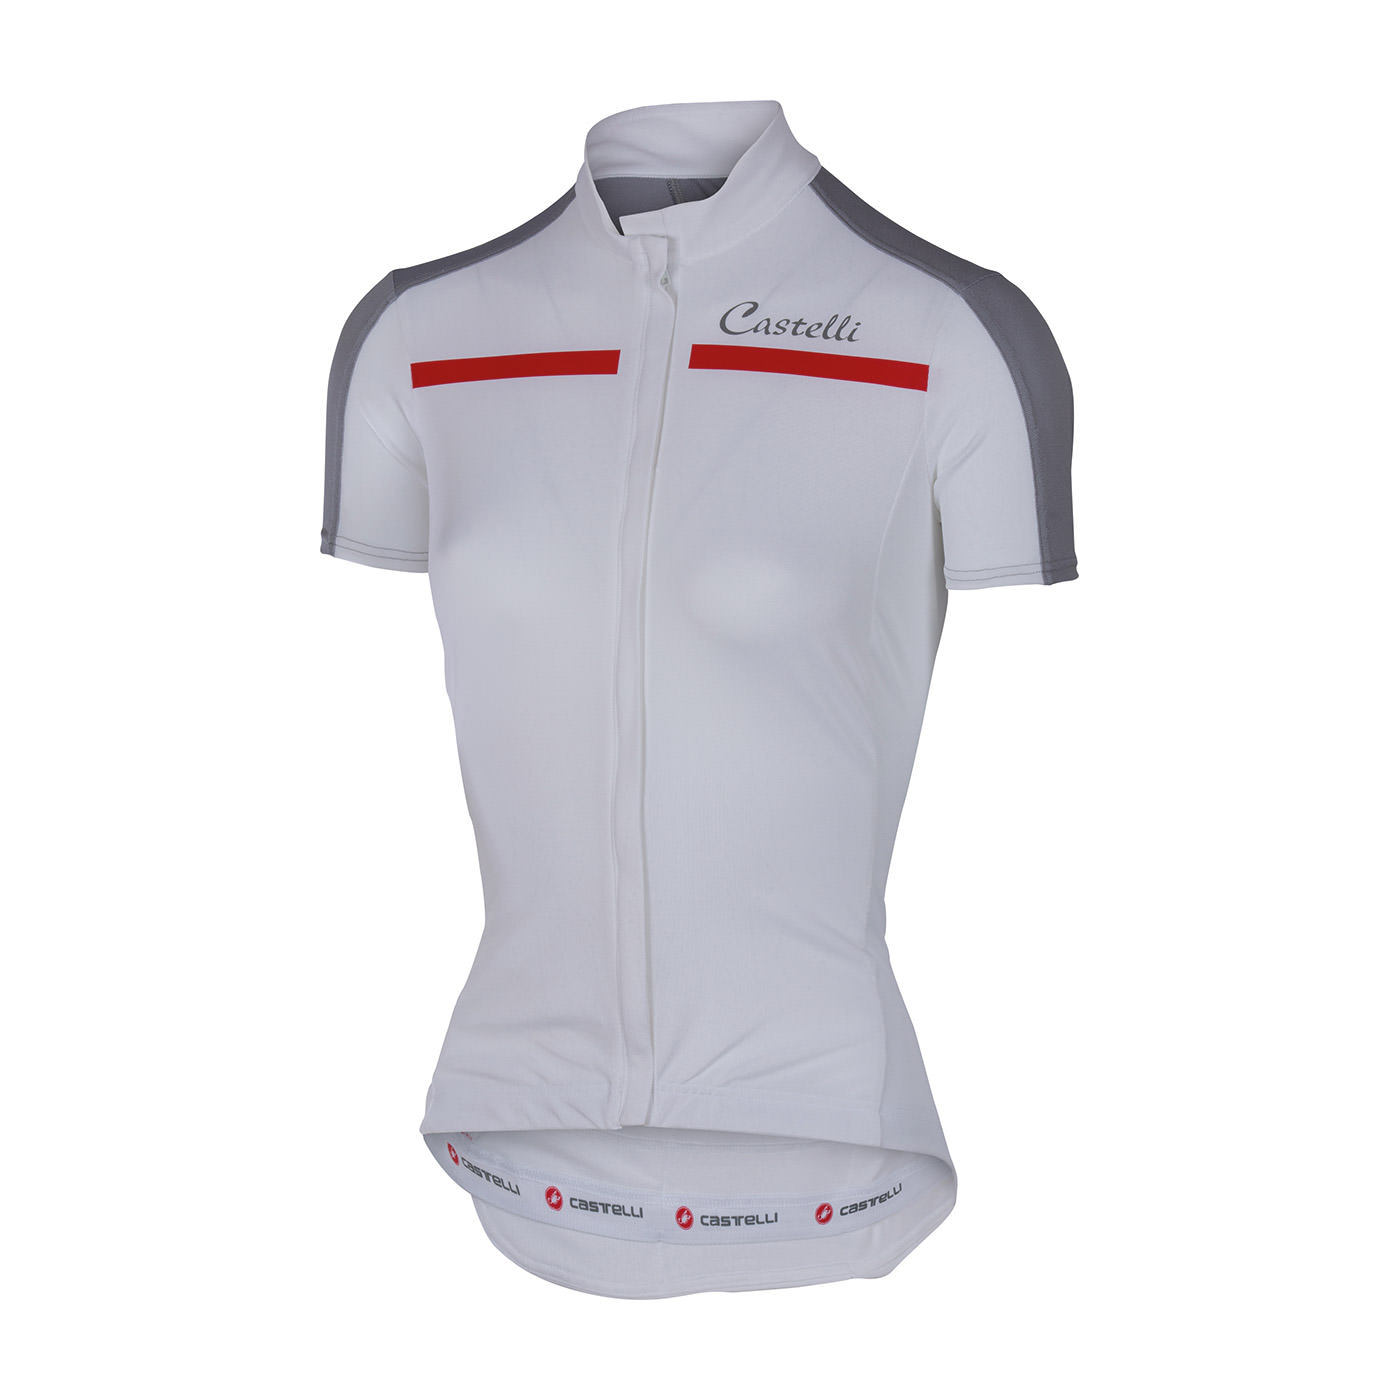 Castelli Ispirata Womens Cycling Jersey FZ   White Grey - 700 95d51dfc4